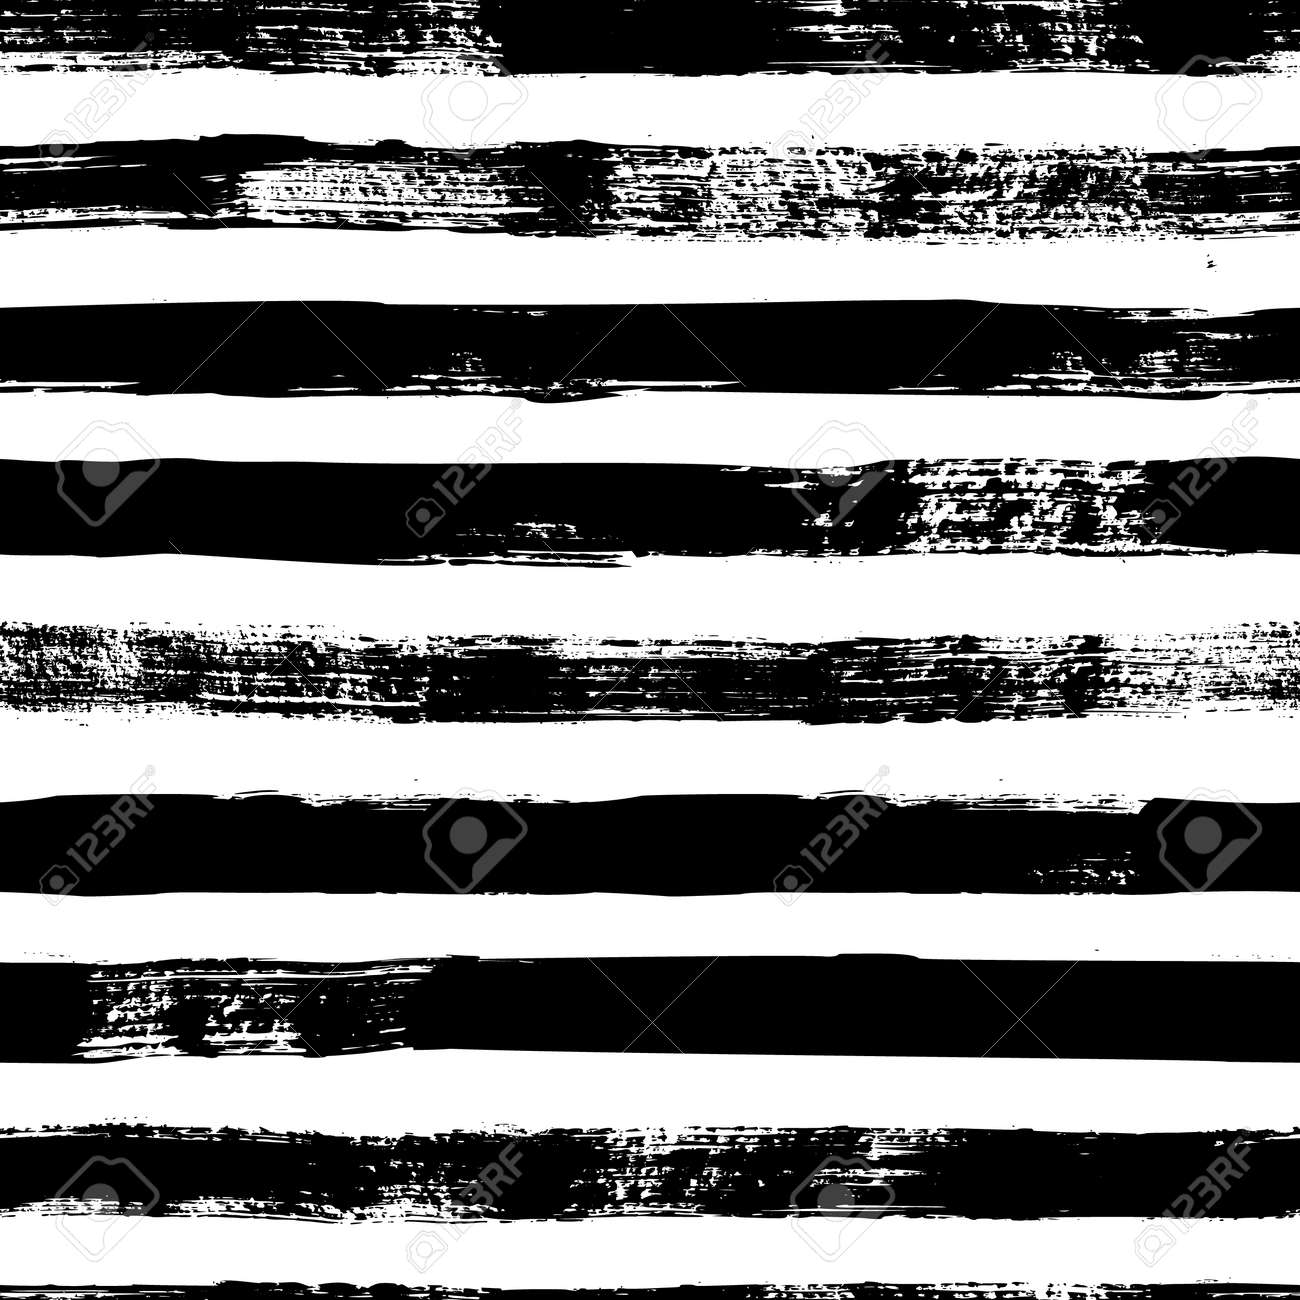 Grunge strips seamless pattern. Abstract texture hand drawn with a ink brush strokes. Vector Monochrome Scandinavian background in a simple style for print on textiles, paper, Wallpaper, t-shirts - 137941728